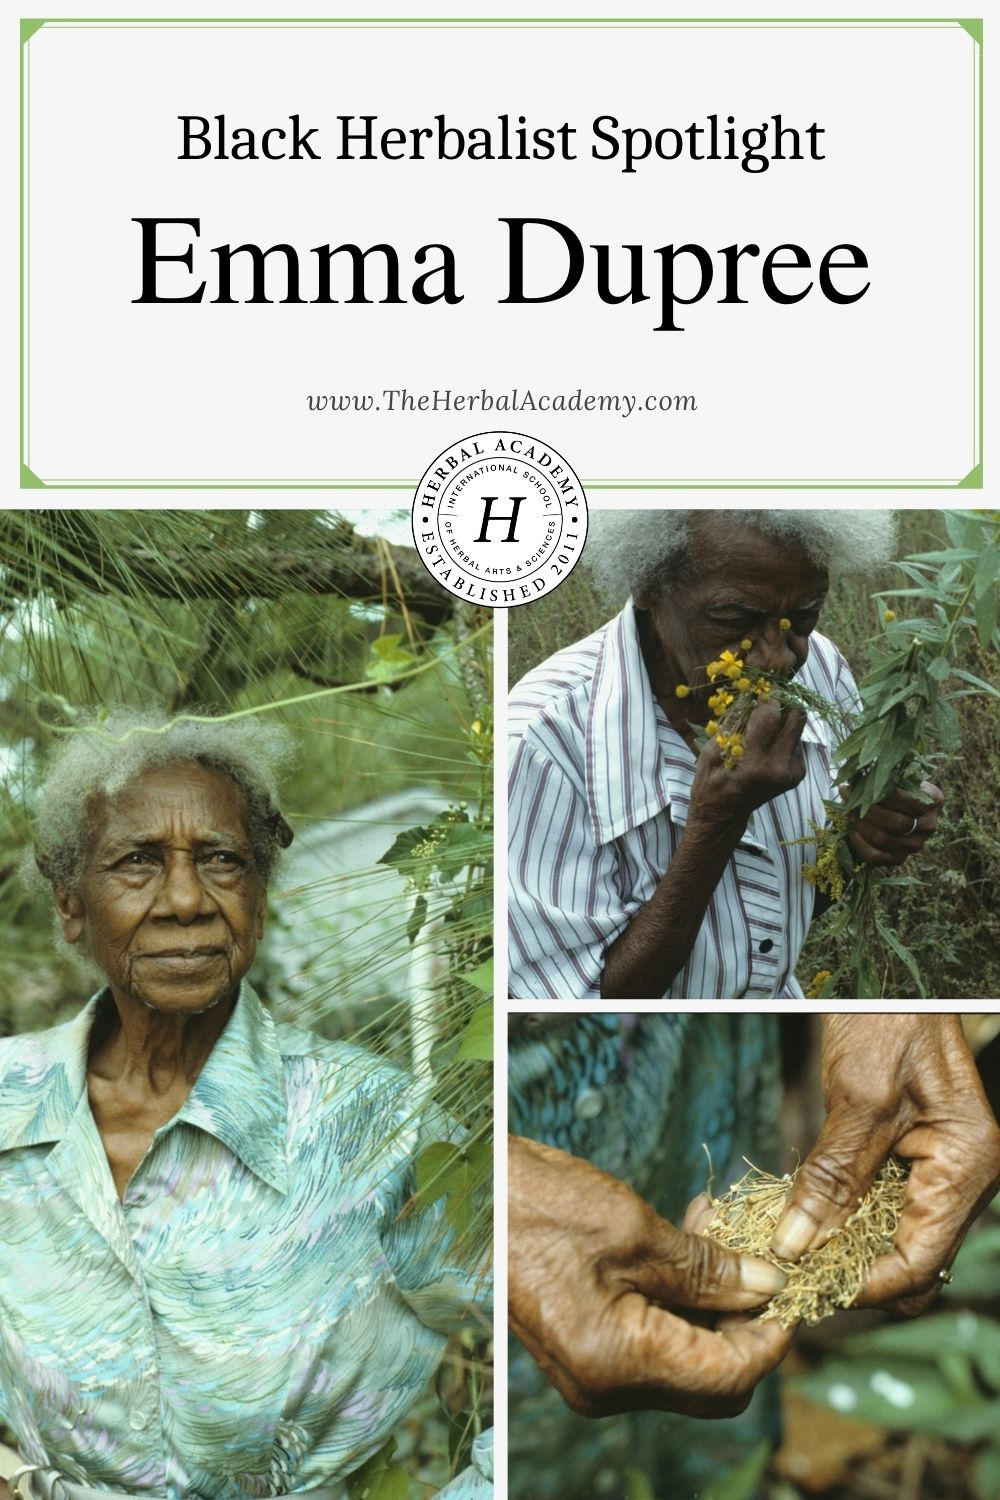 Black Herbalist Spotlight: Emma Dupree | Herbal Academy | Be inspired by the life of Emma Dupree, a Black herbalist whose work touched countless lives in her rural North Carolina community.